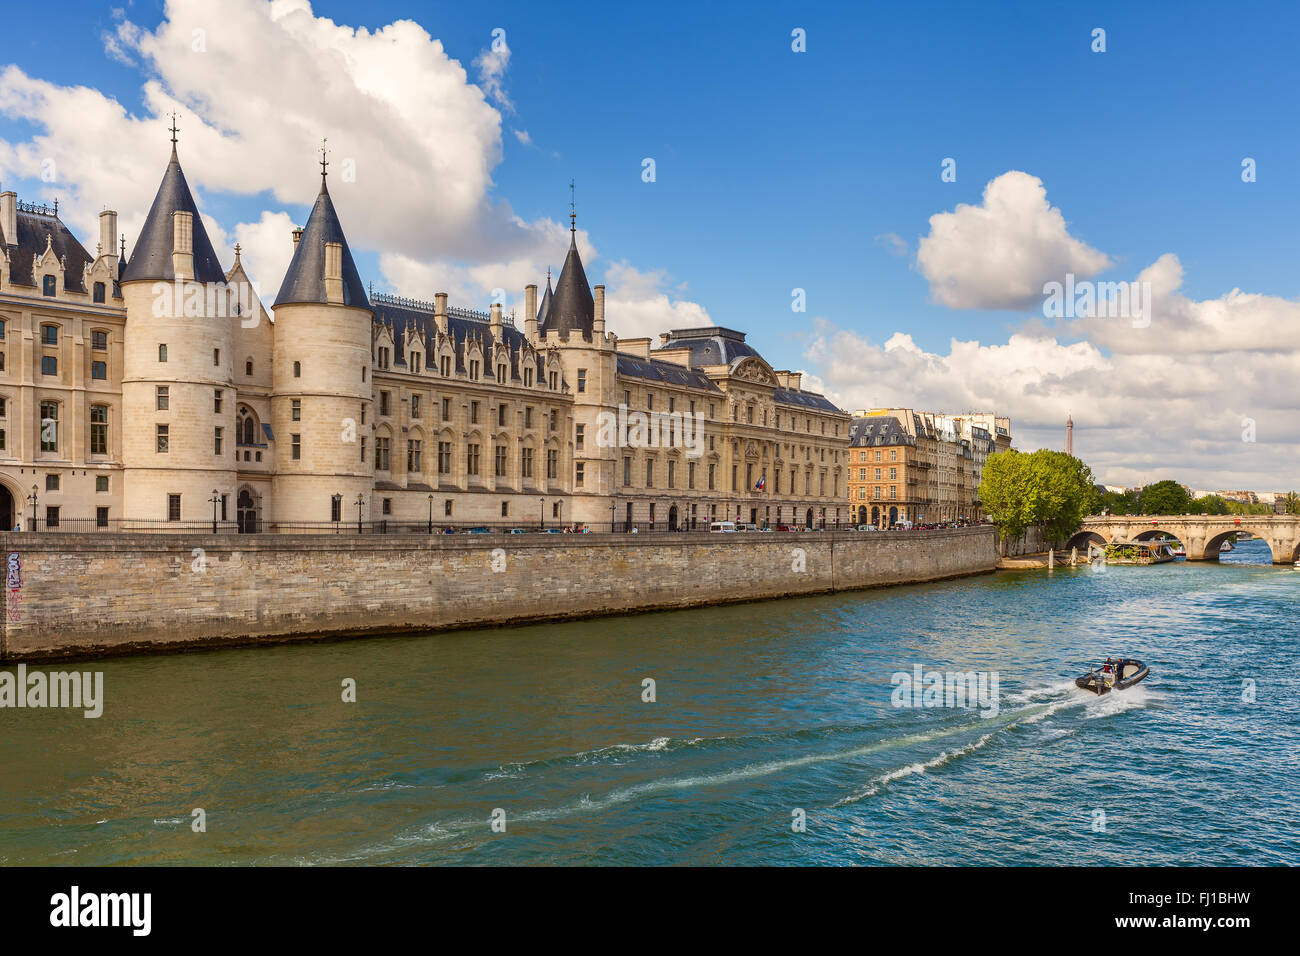 Avis de Conciergerie - ancienne prison et partie de l'ancien palais royal sur la rive de la Seine à Paris, Photo Stock